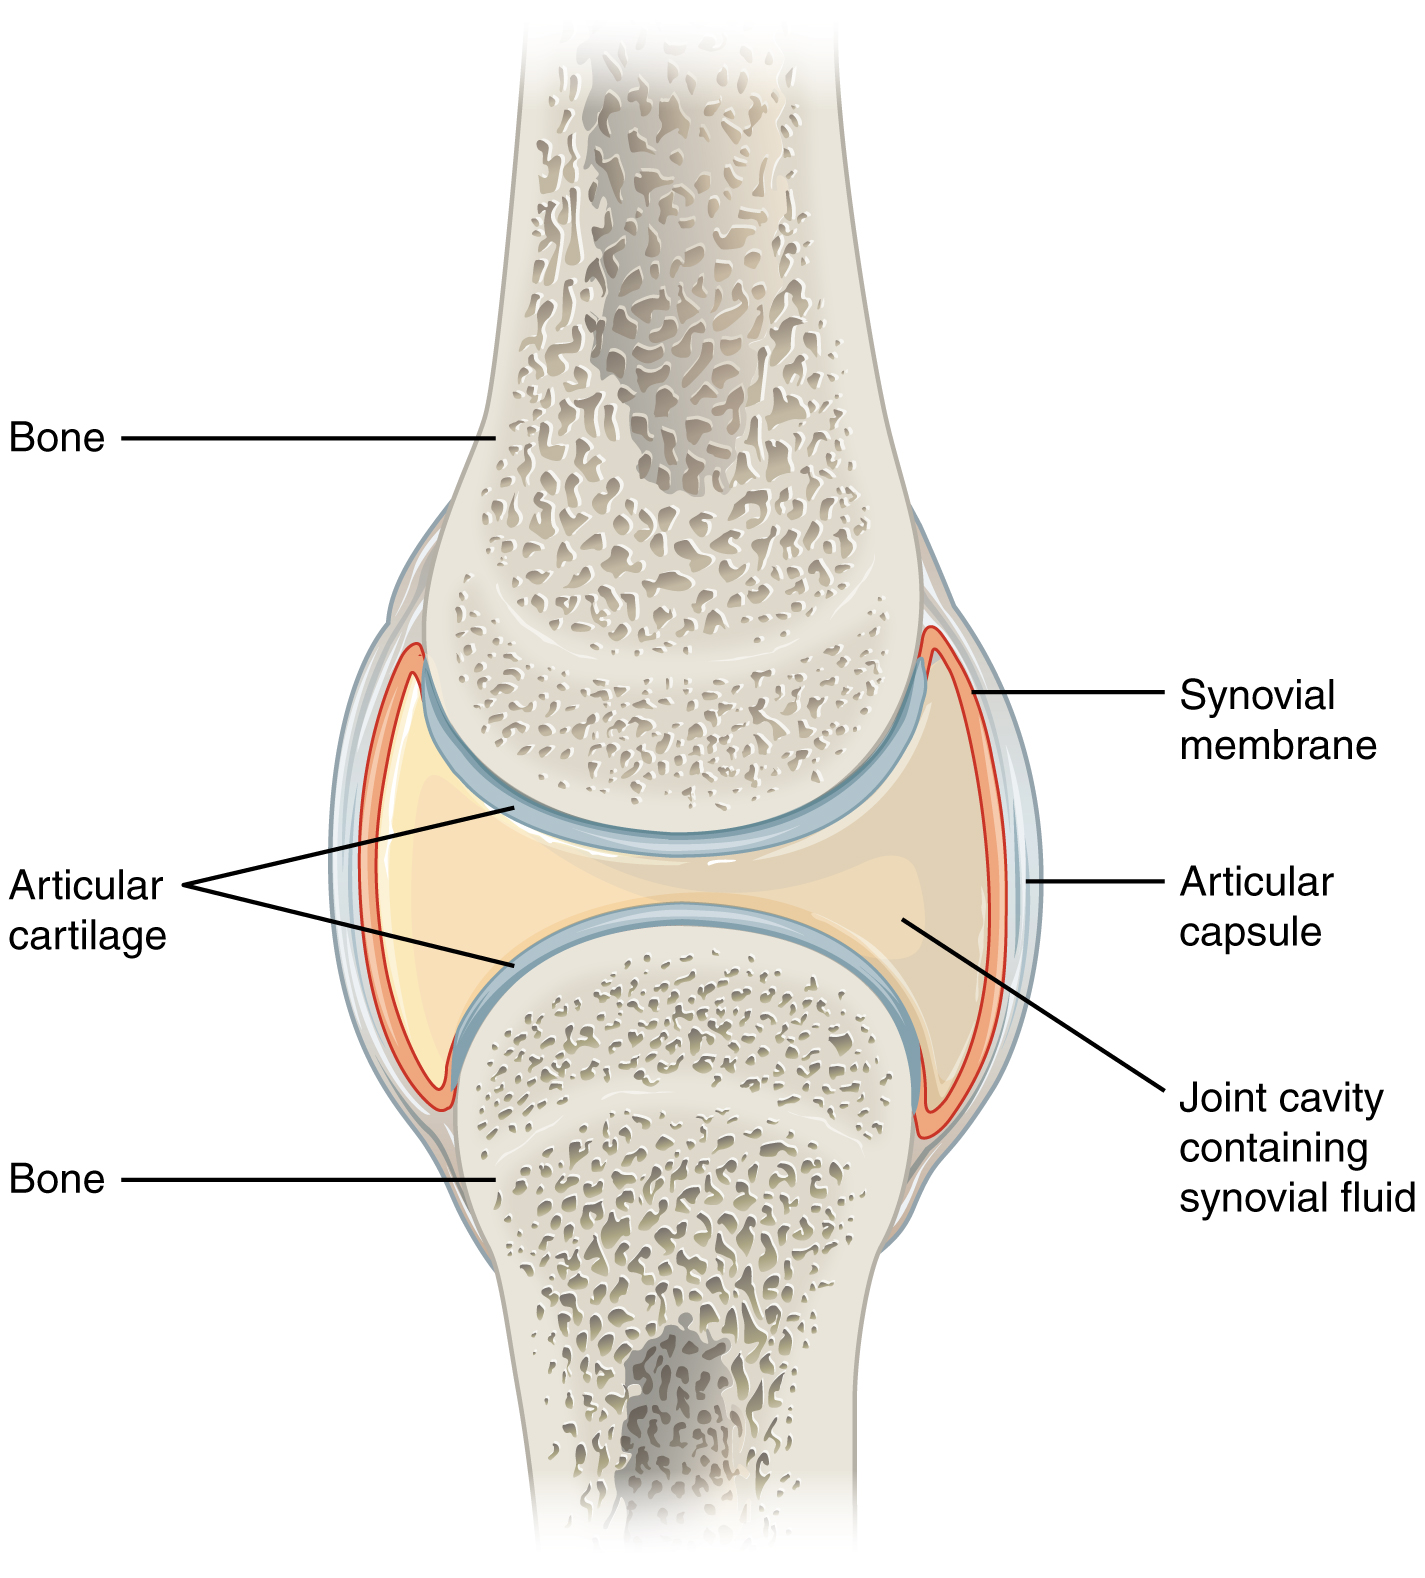 9.4 Synovial Joints – Anatomy and Physiology